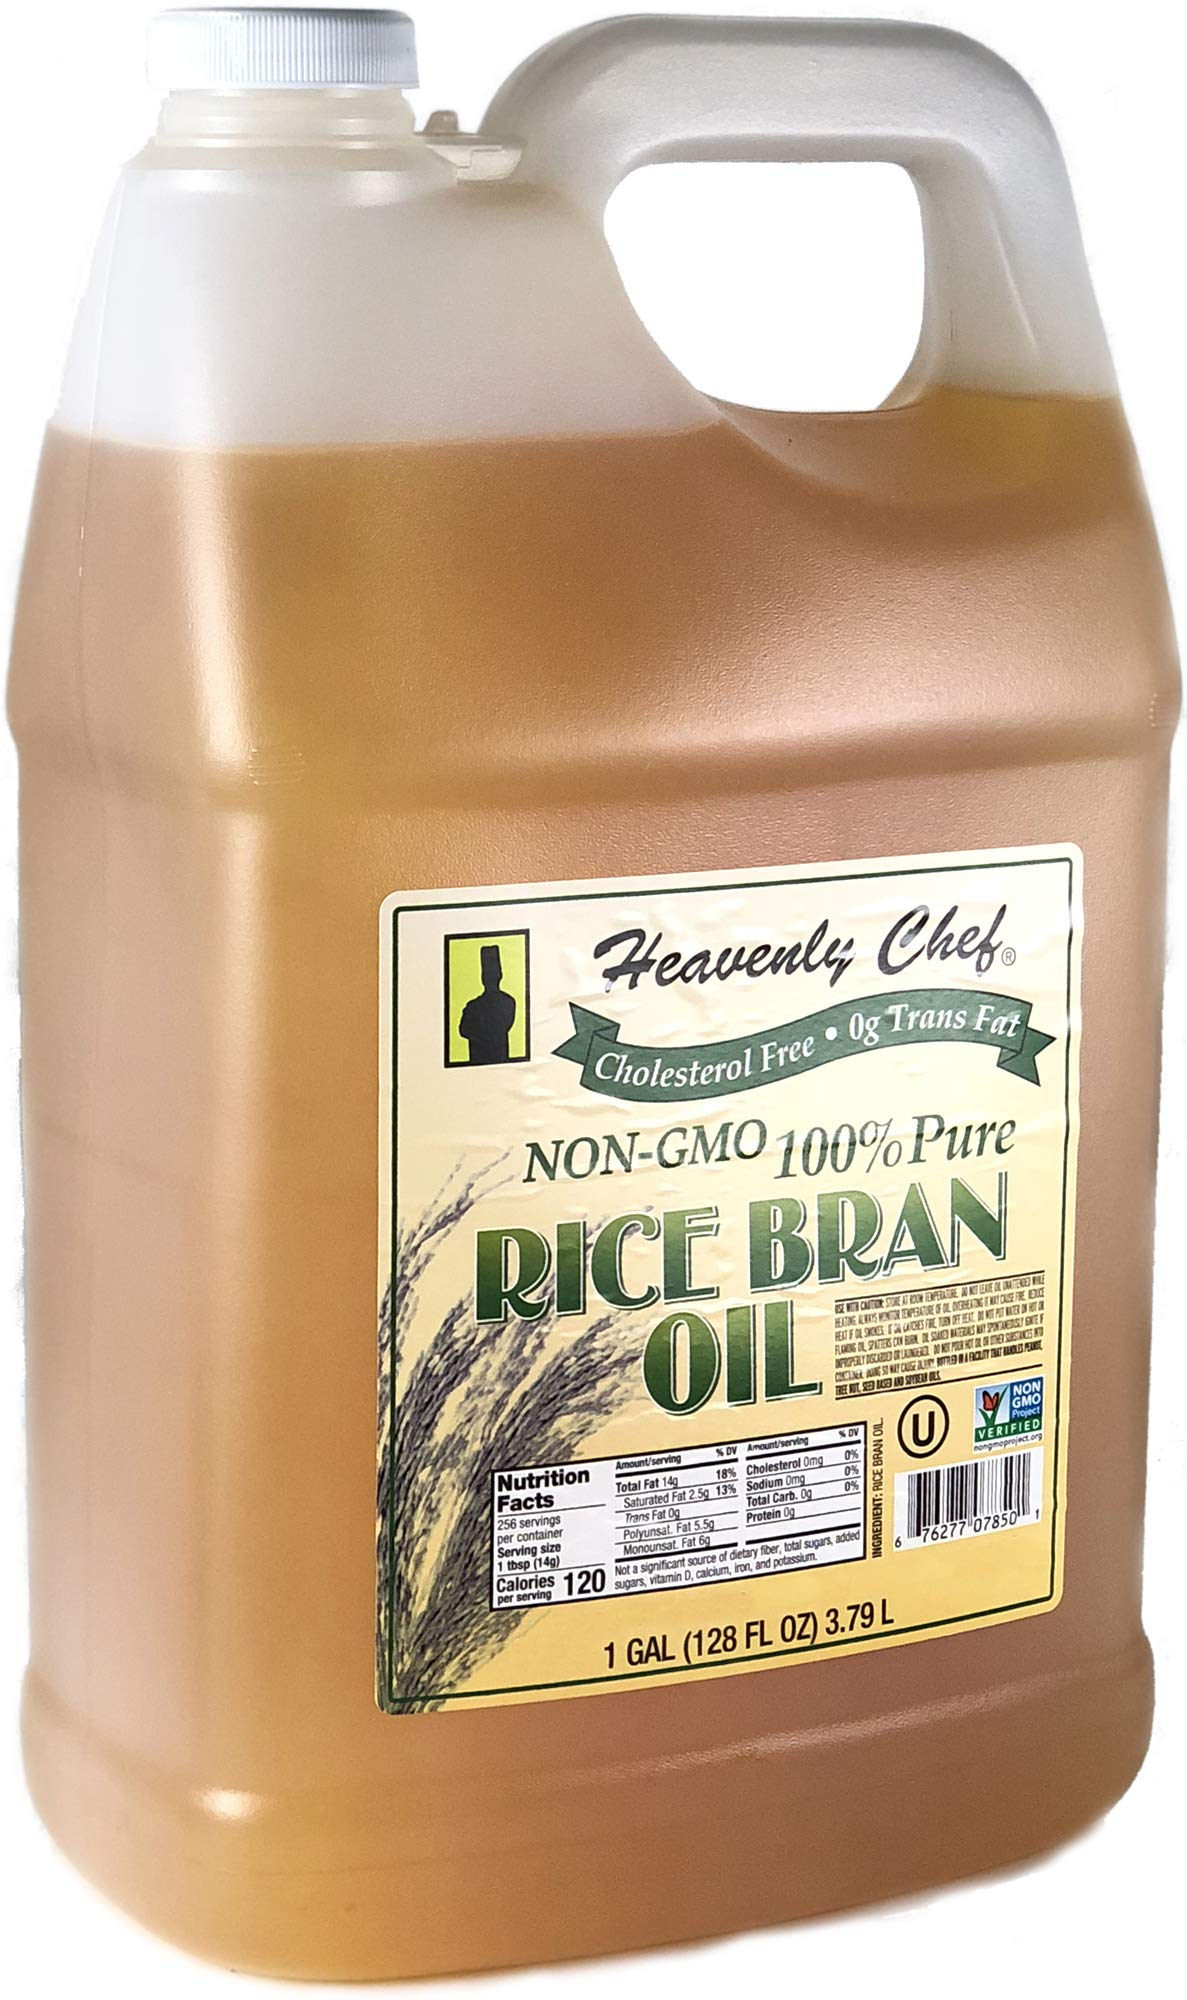 RICE BRAN OIL | 1 Gallon (128 Ounces) | Kosher | All- Natural, Made from 100% Non-GMO Rice | Rich in Vit E and Gamma Oryzanol | Unfiltered, No Trans Fat and Heart Healthy | by Heavenly Chef by Heavenly Chef